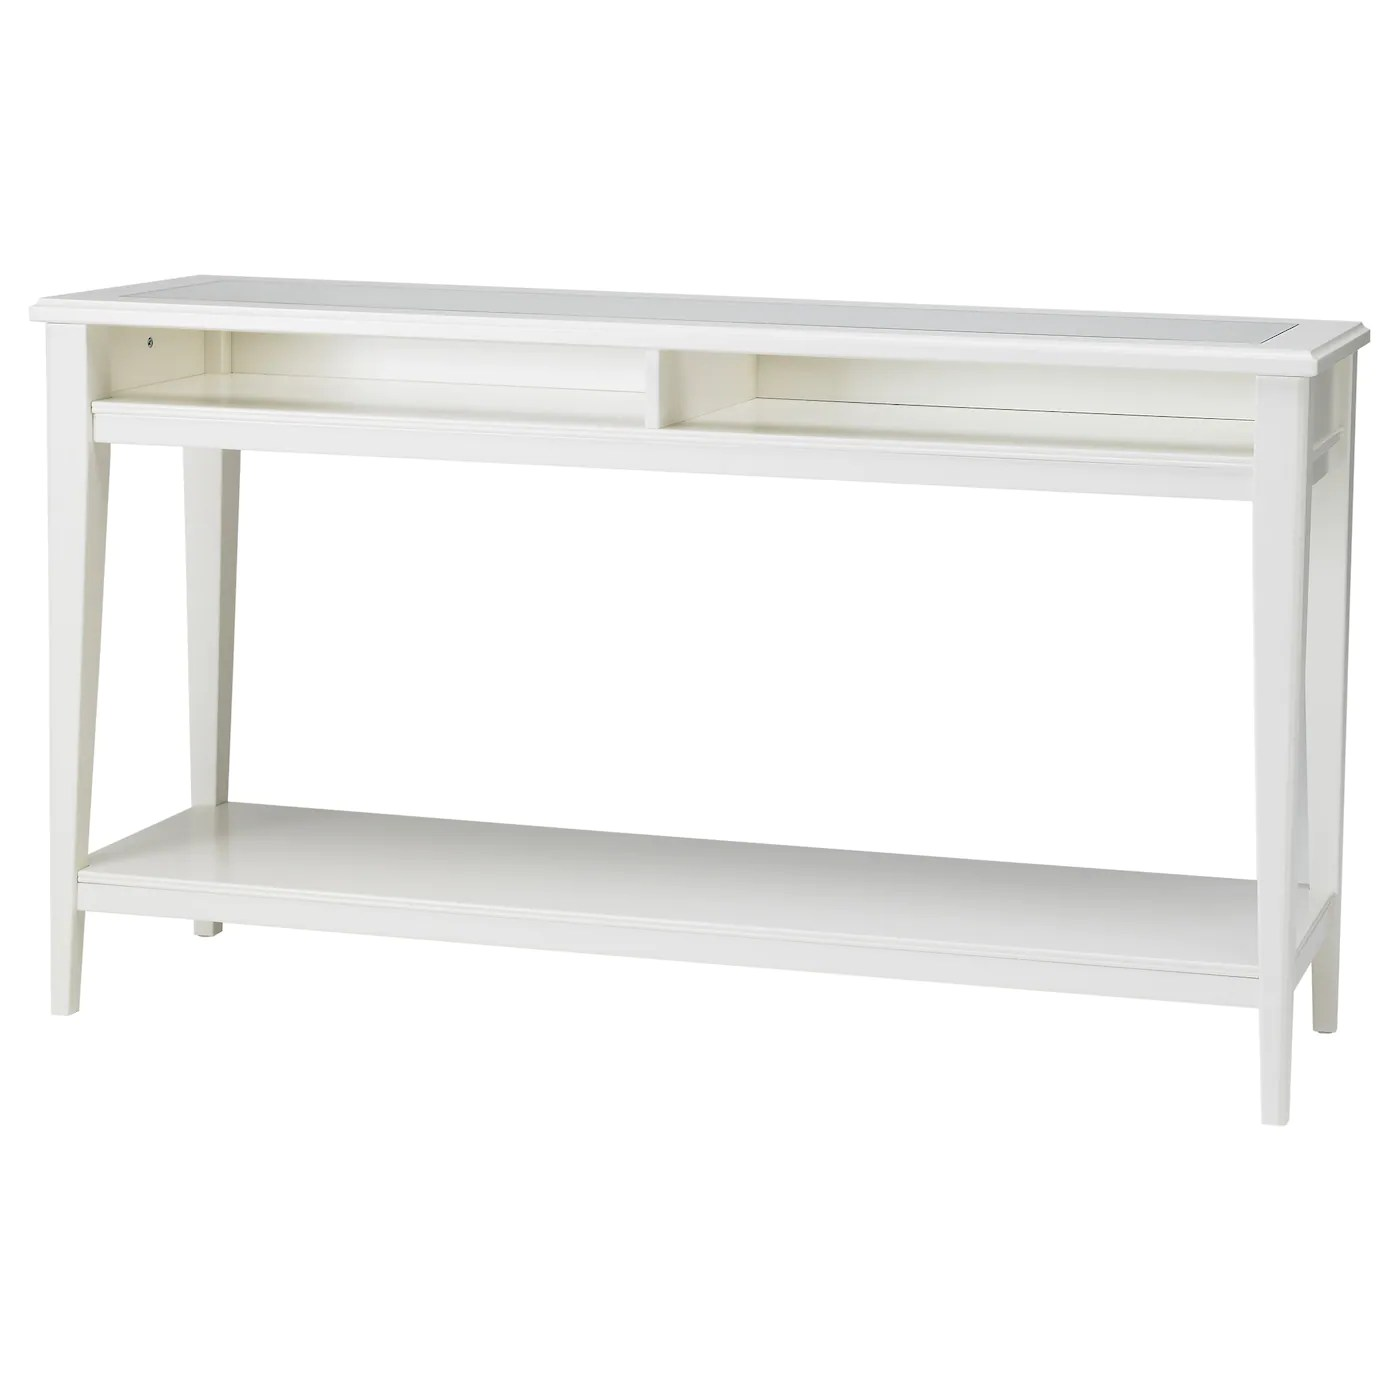 Table Console Ikea Liatorp Console Table White Glass 133 X 37 Cm Ikea